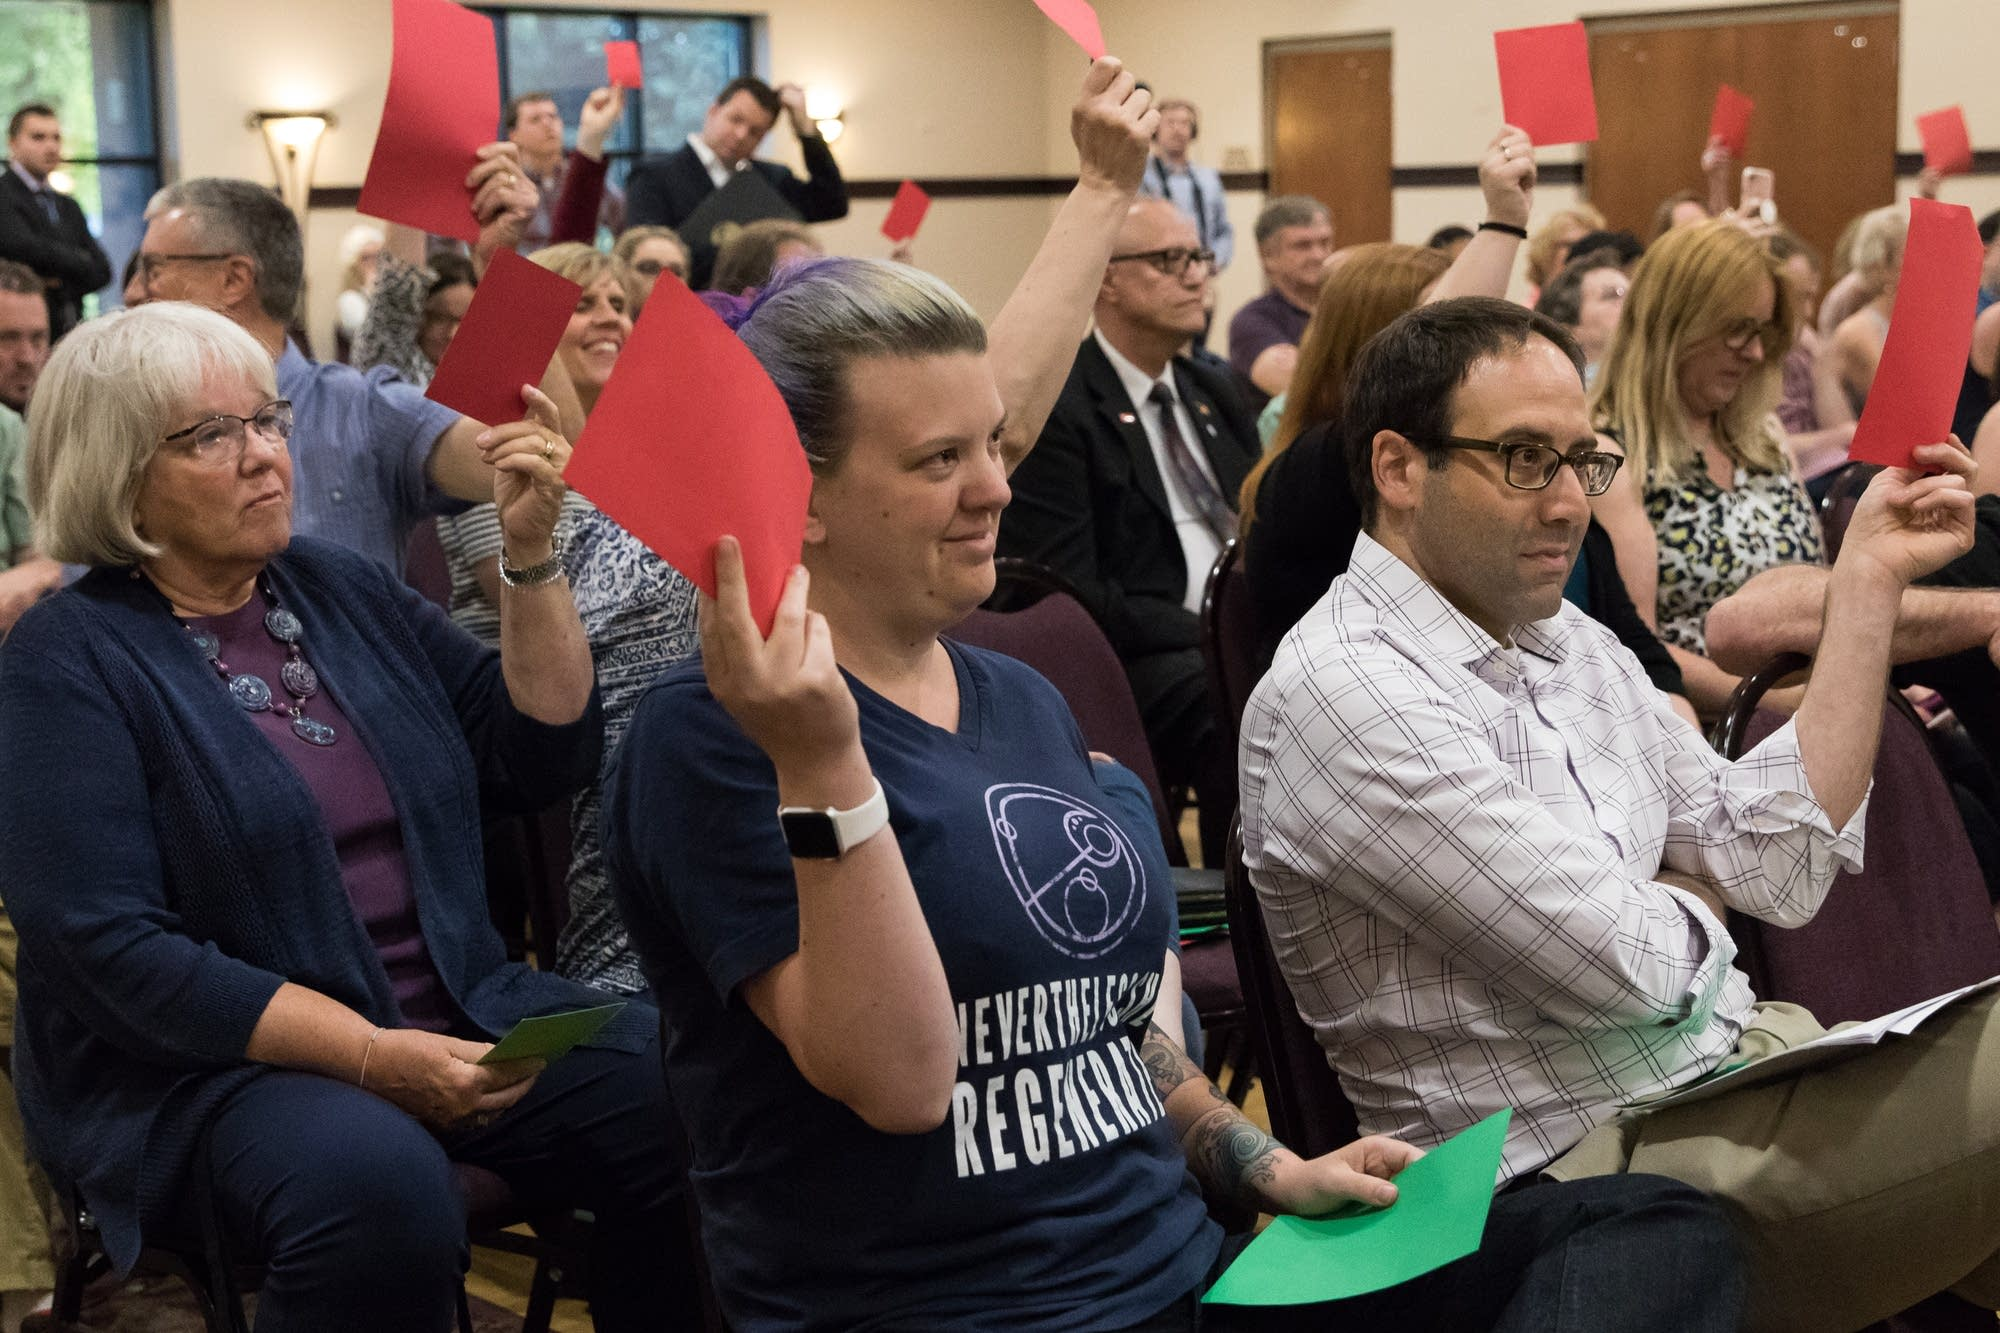 Town hall attendees raise red cards in the air to show they disagree.